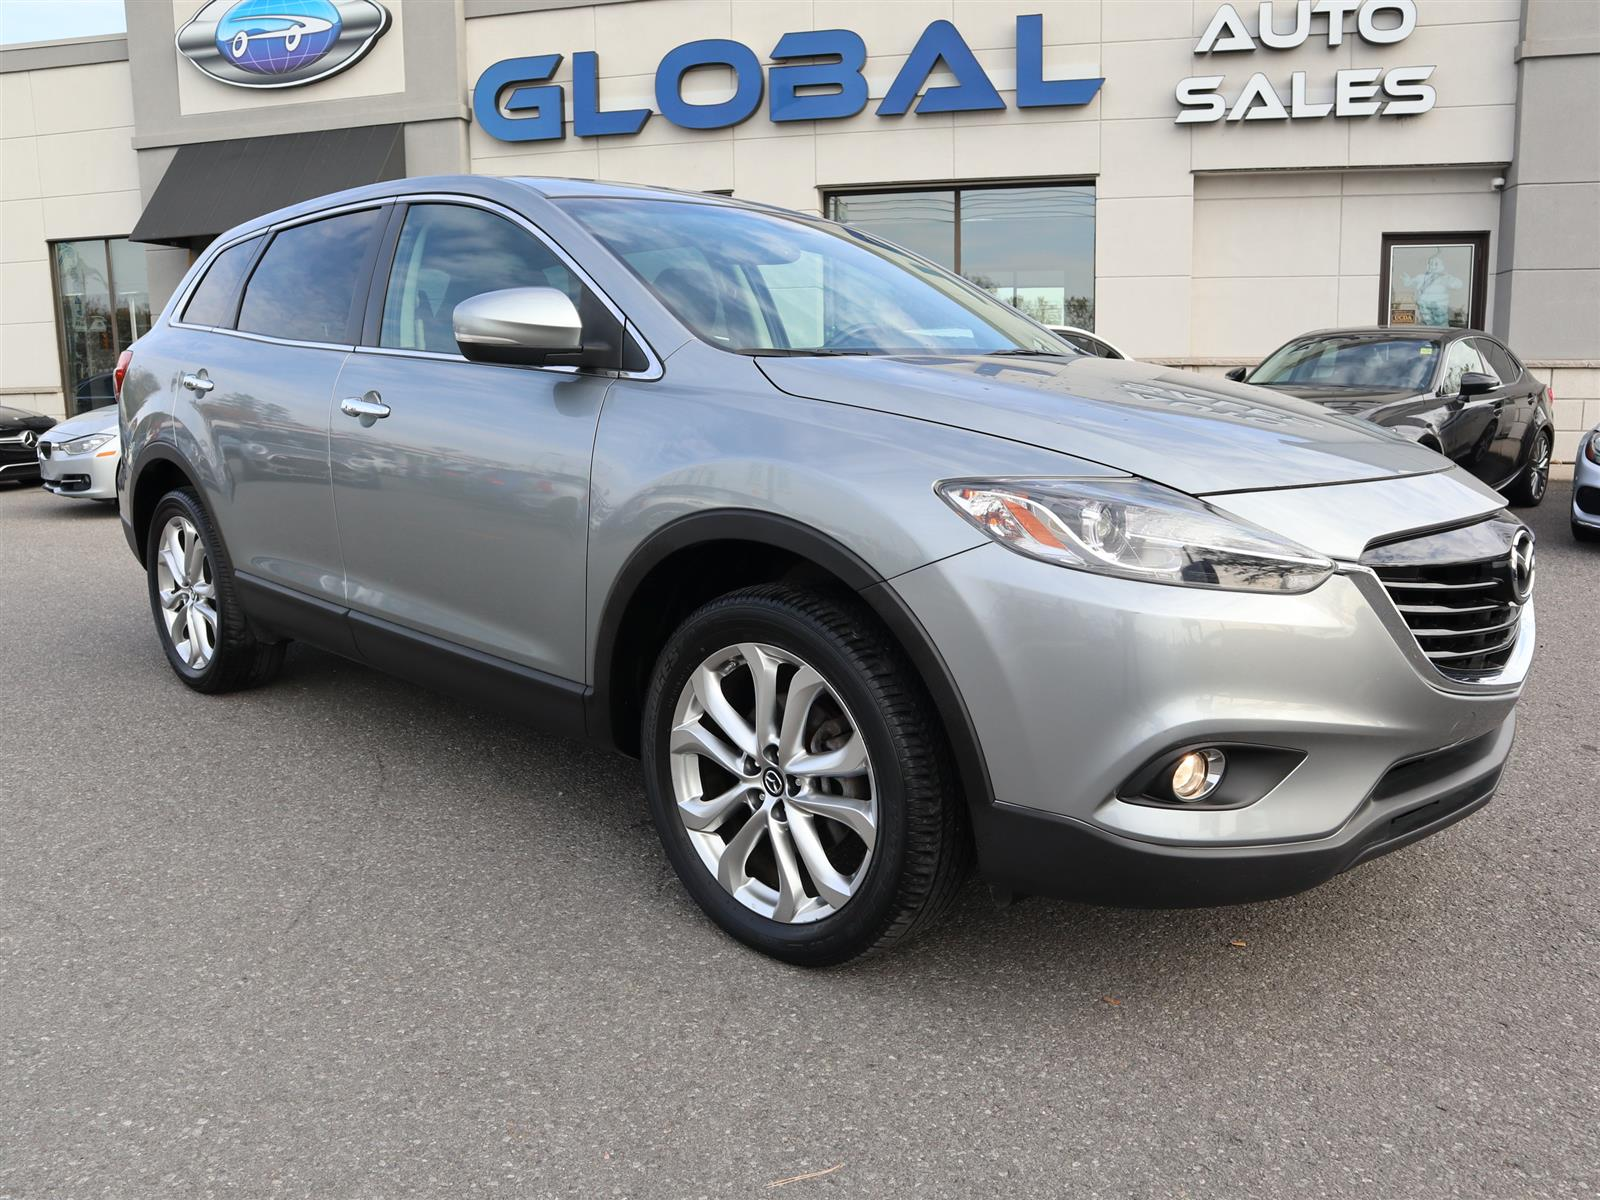 2013 mazda cx 9 grand touring global auto sales used. Black Bedroom Furniture Sets. Home Design Ideas